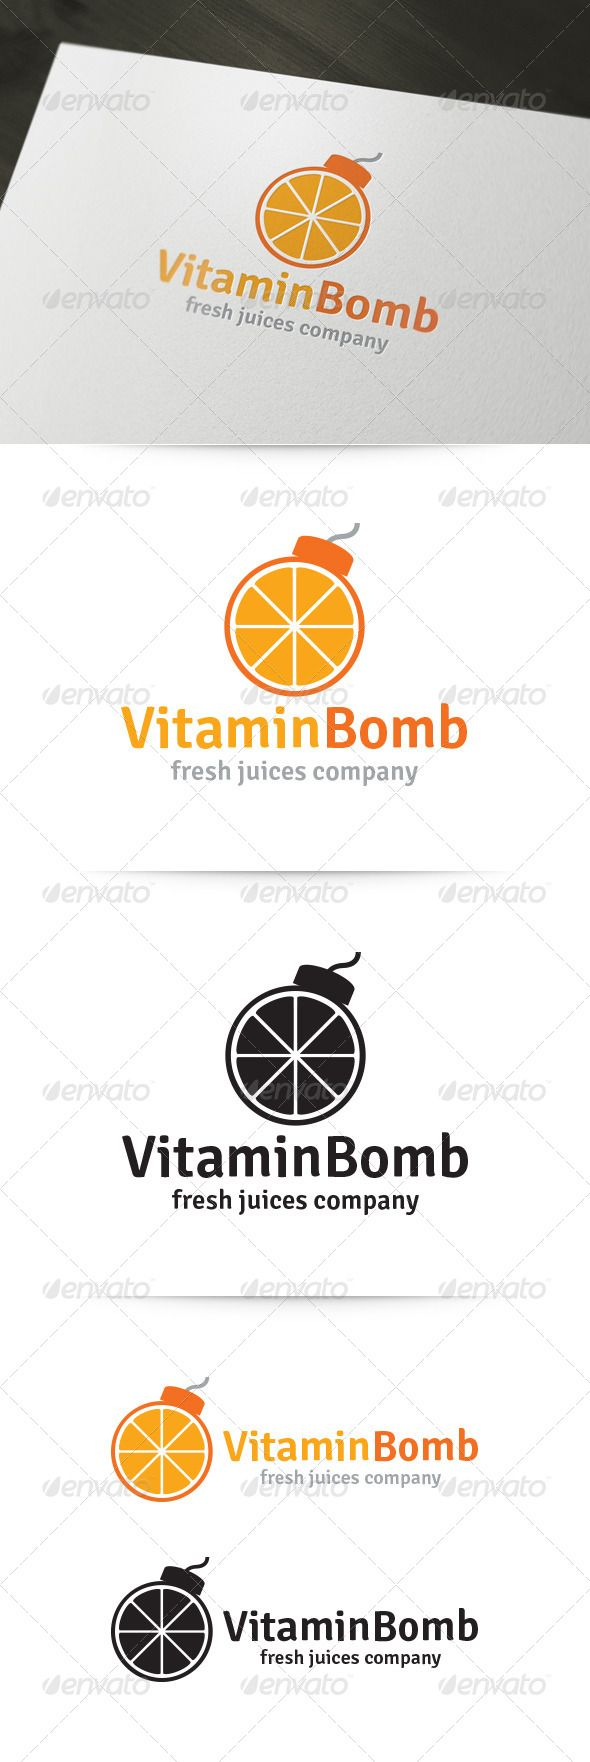 Great visual pun bombs the consumer with the idea that they product they are consuming is a blast of vitamins. Could maybe benefit from the wick sparking.